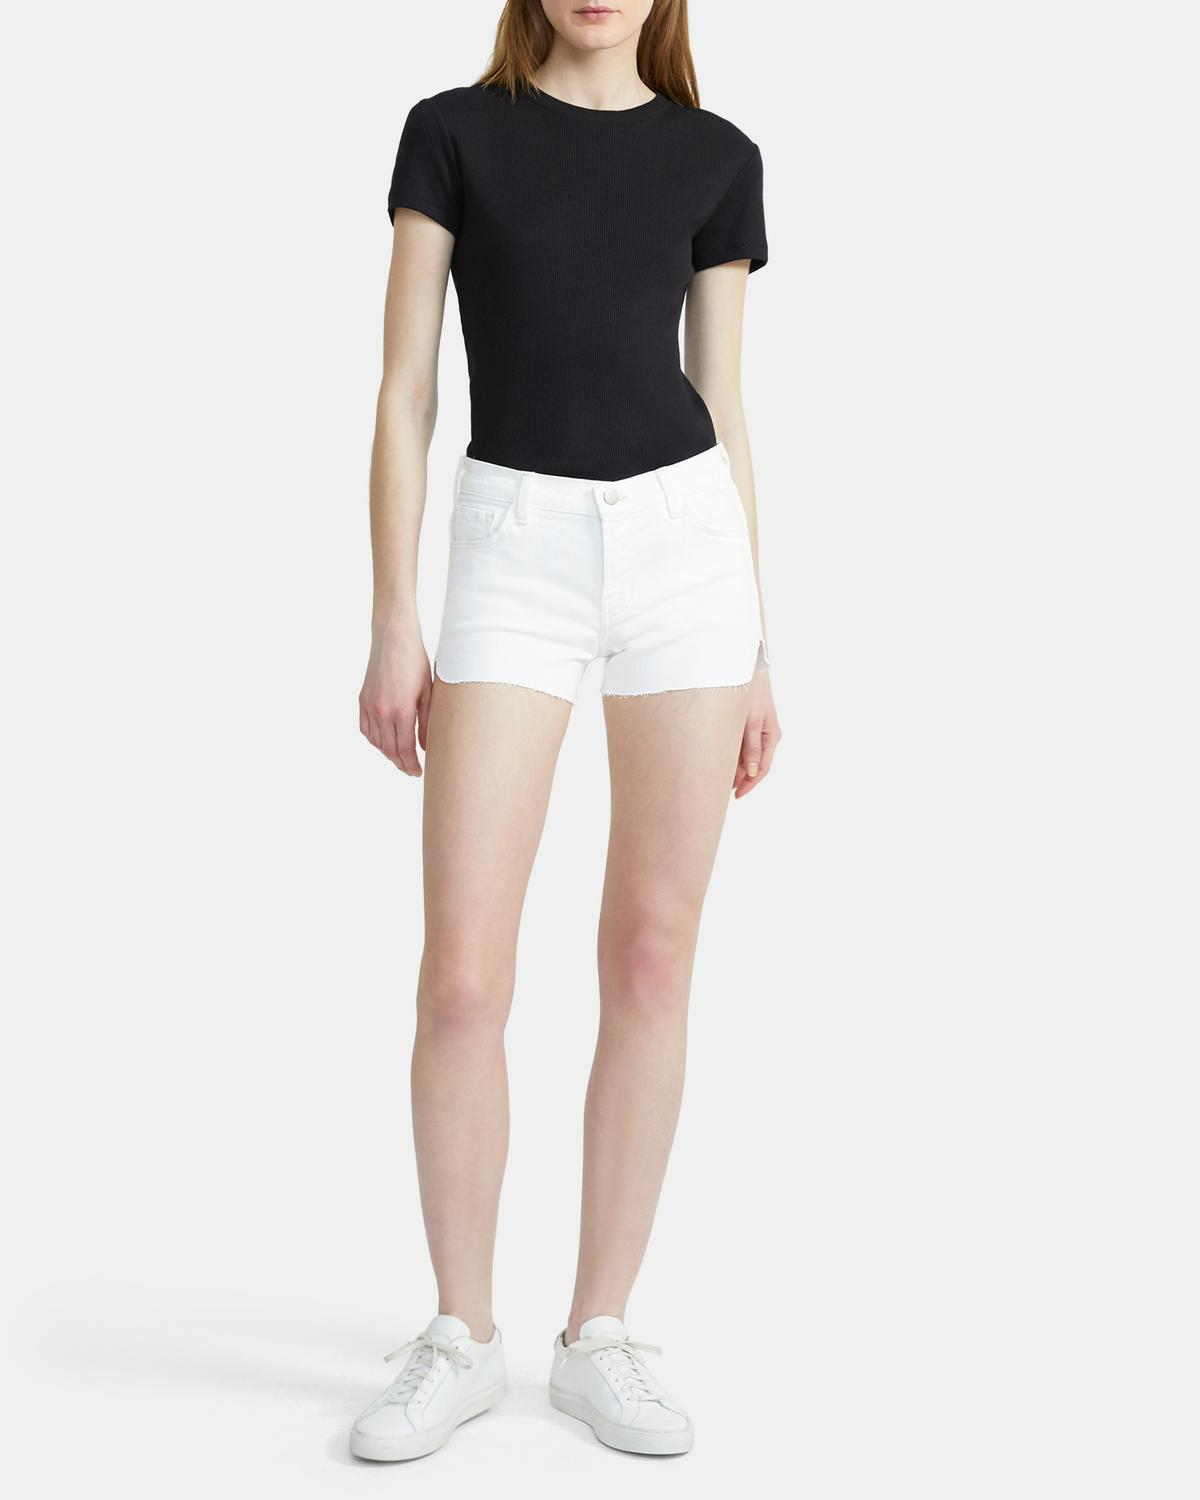 J Brand 1044 Mid-Rise Shorts 0 - click to view larger image